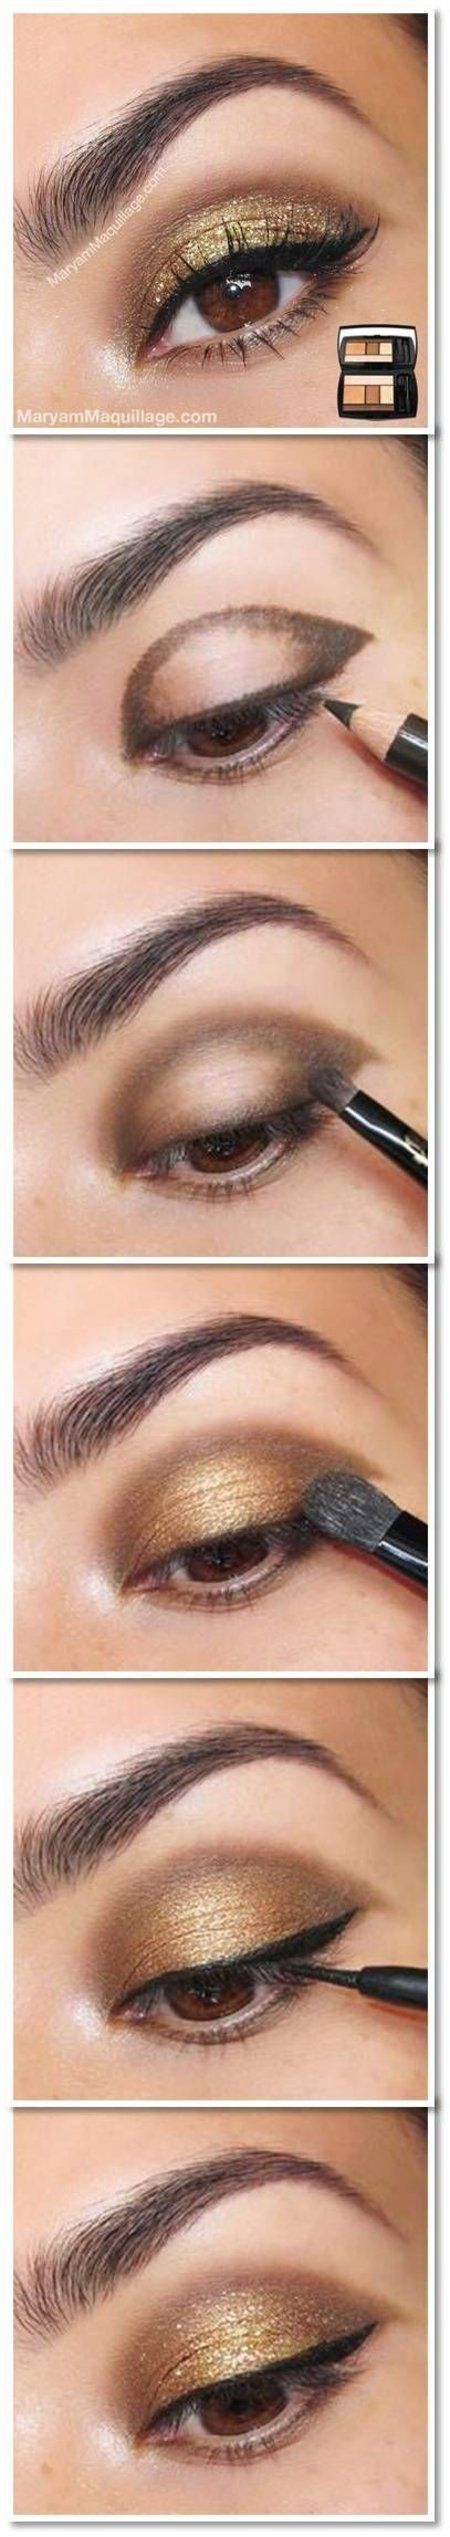 HOW TO: Gold glitter eye look Mary Kay mineral eye color Amber Blaze, Sienna or Cinnabar black liquid eyeliner